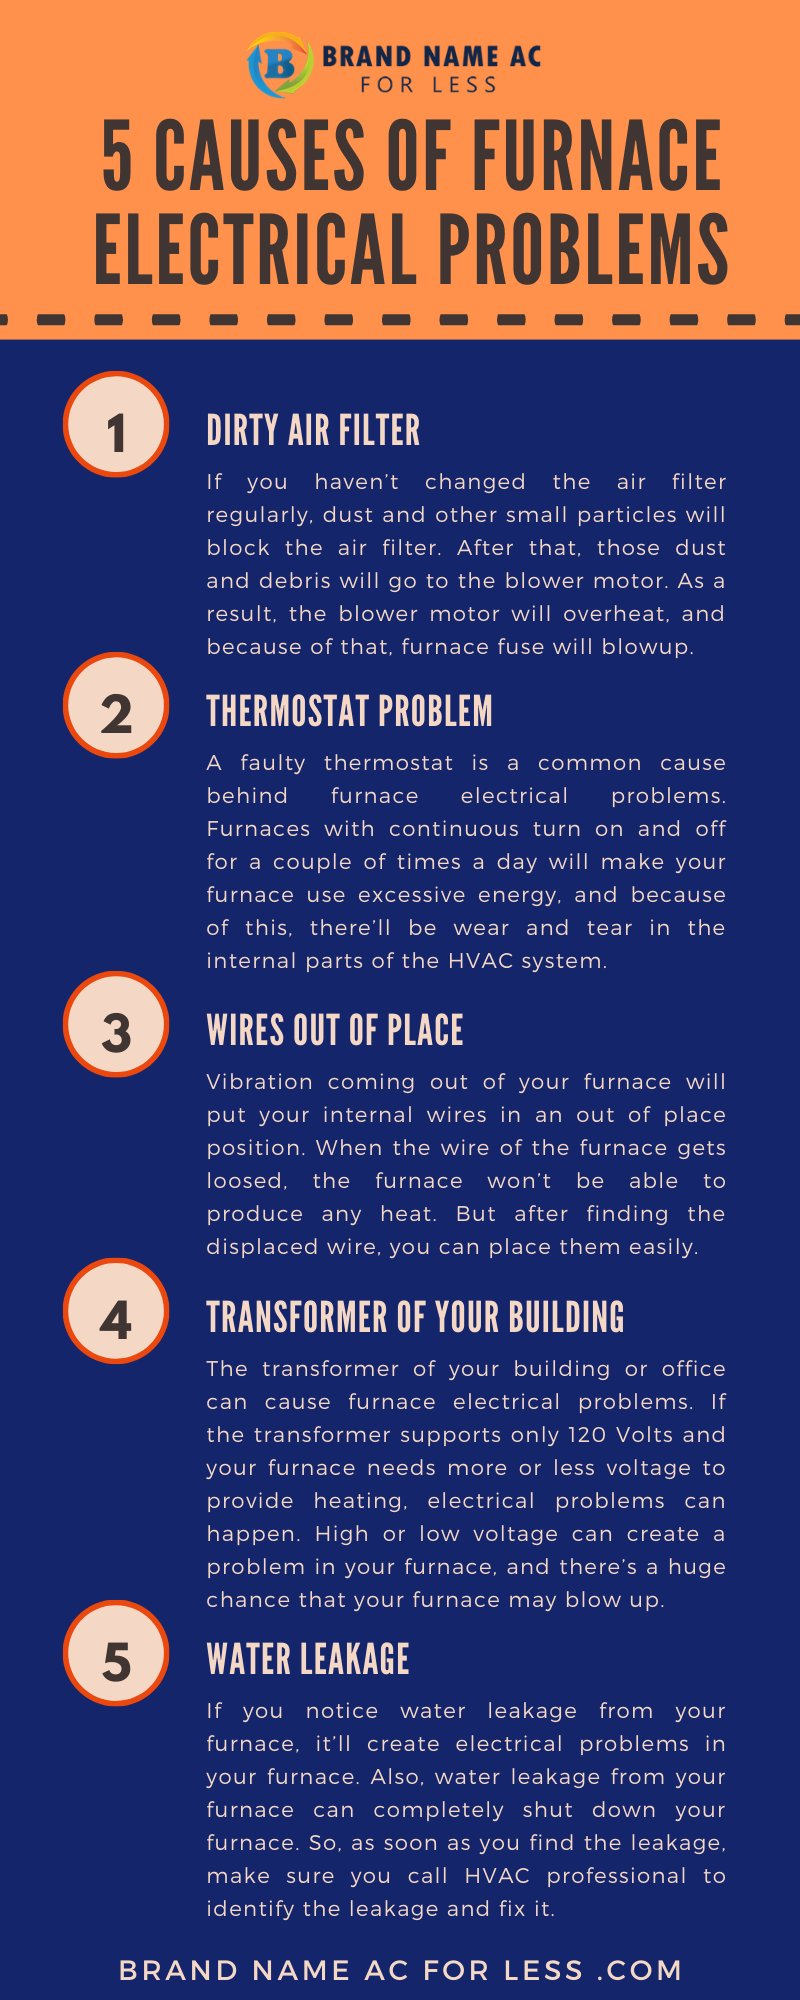 5 Causes of Furnace Electrical Problems [Infographic]